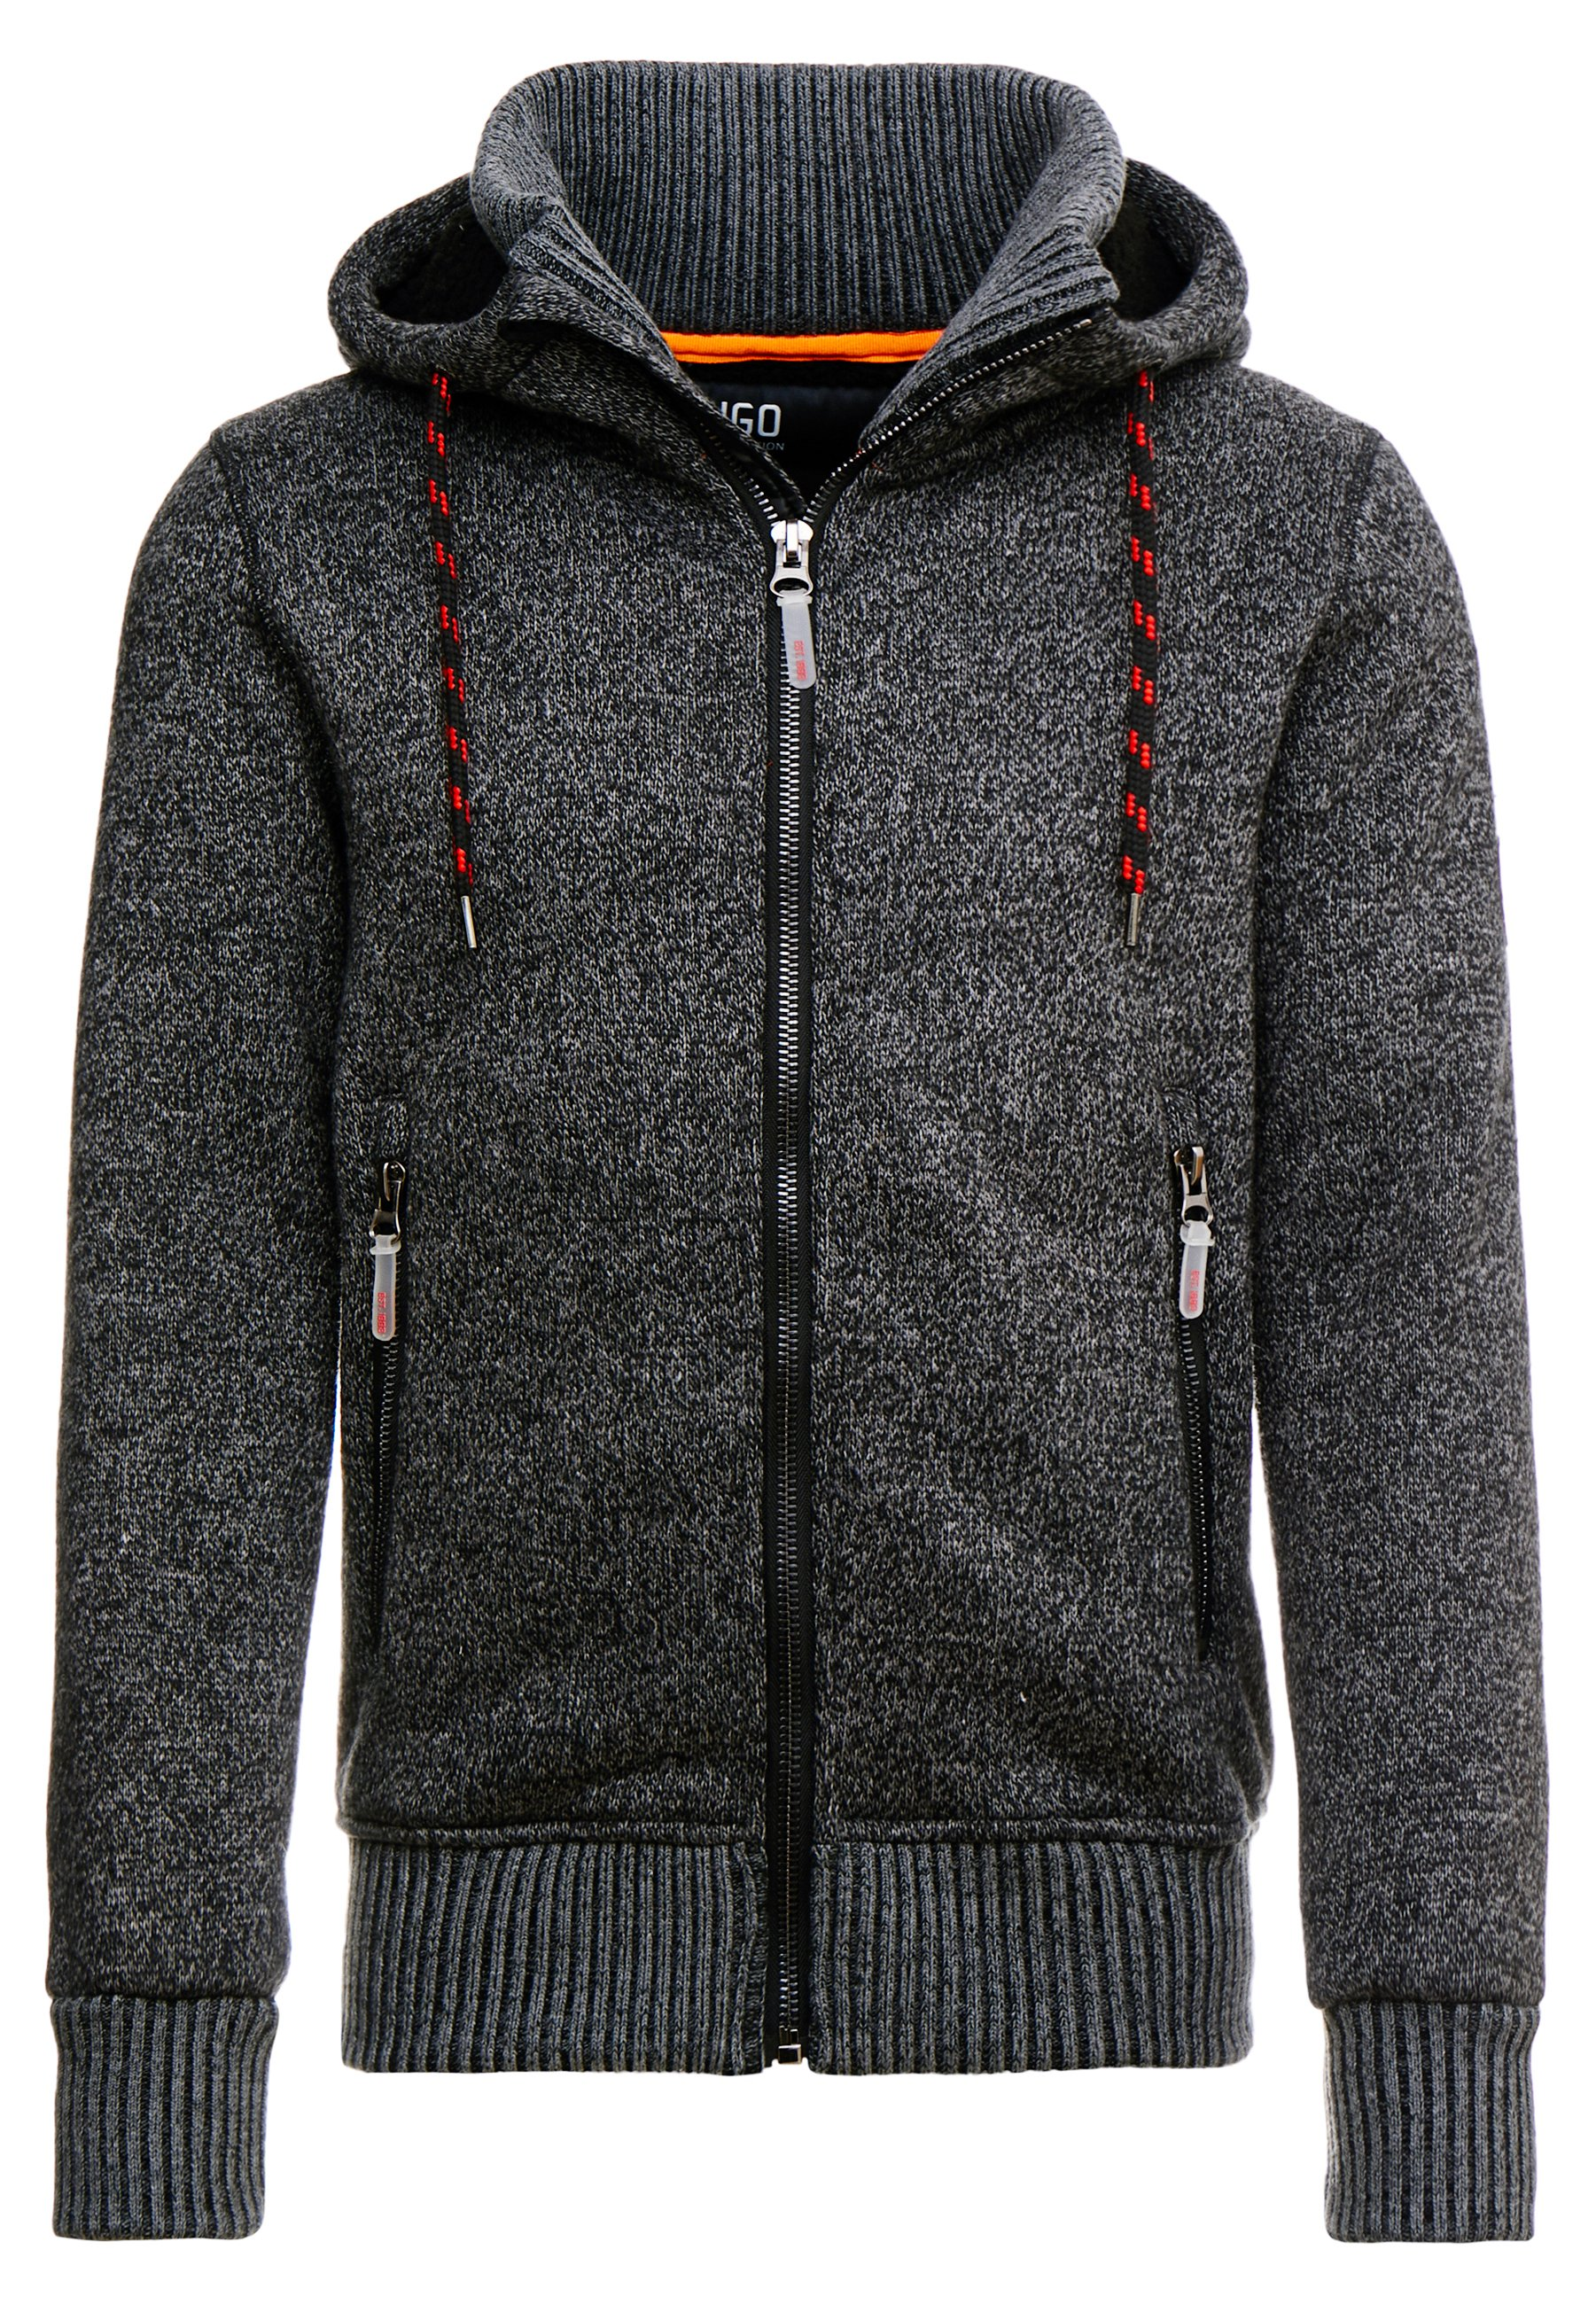 INDICODE JEANS CAXTON Sweatjacke charcoal mix Zalando.at